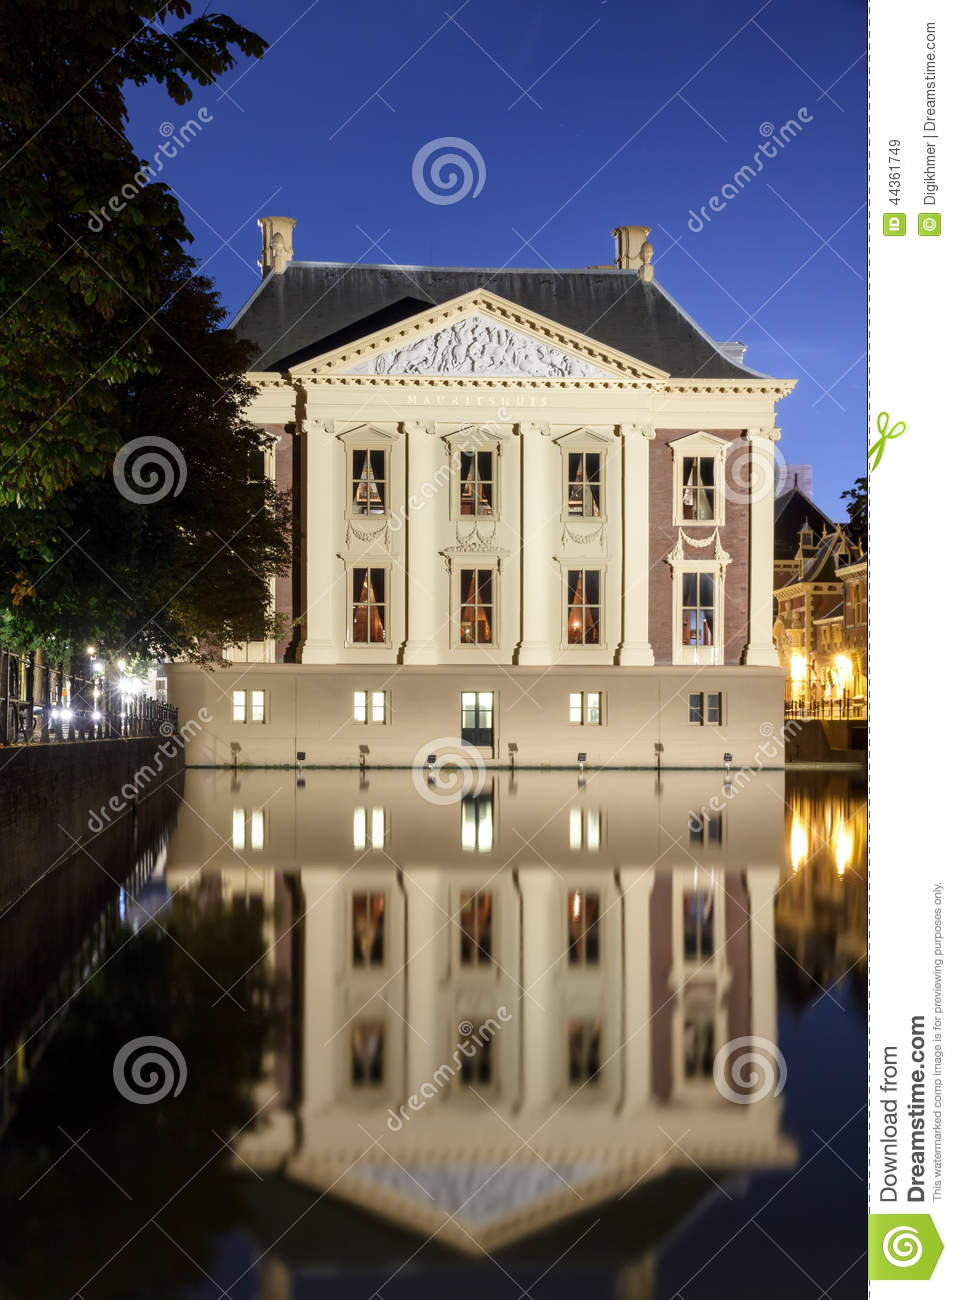 Museo di Mauritshuis